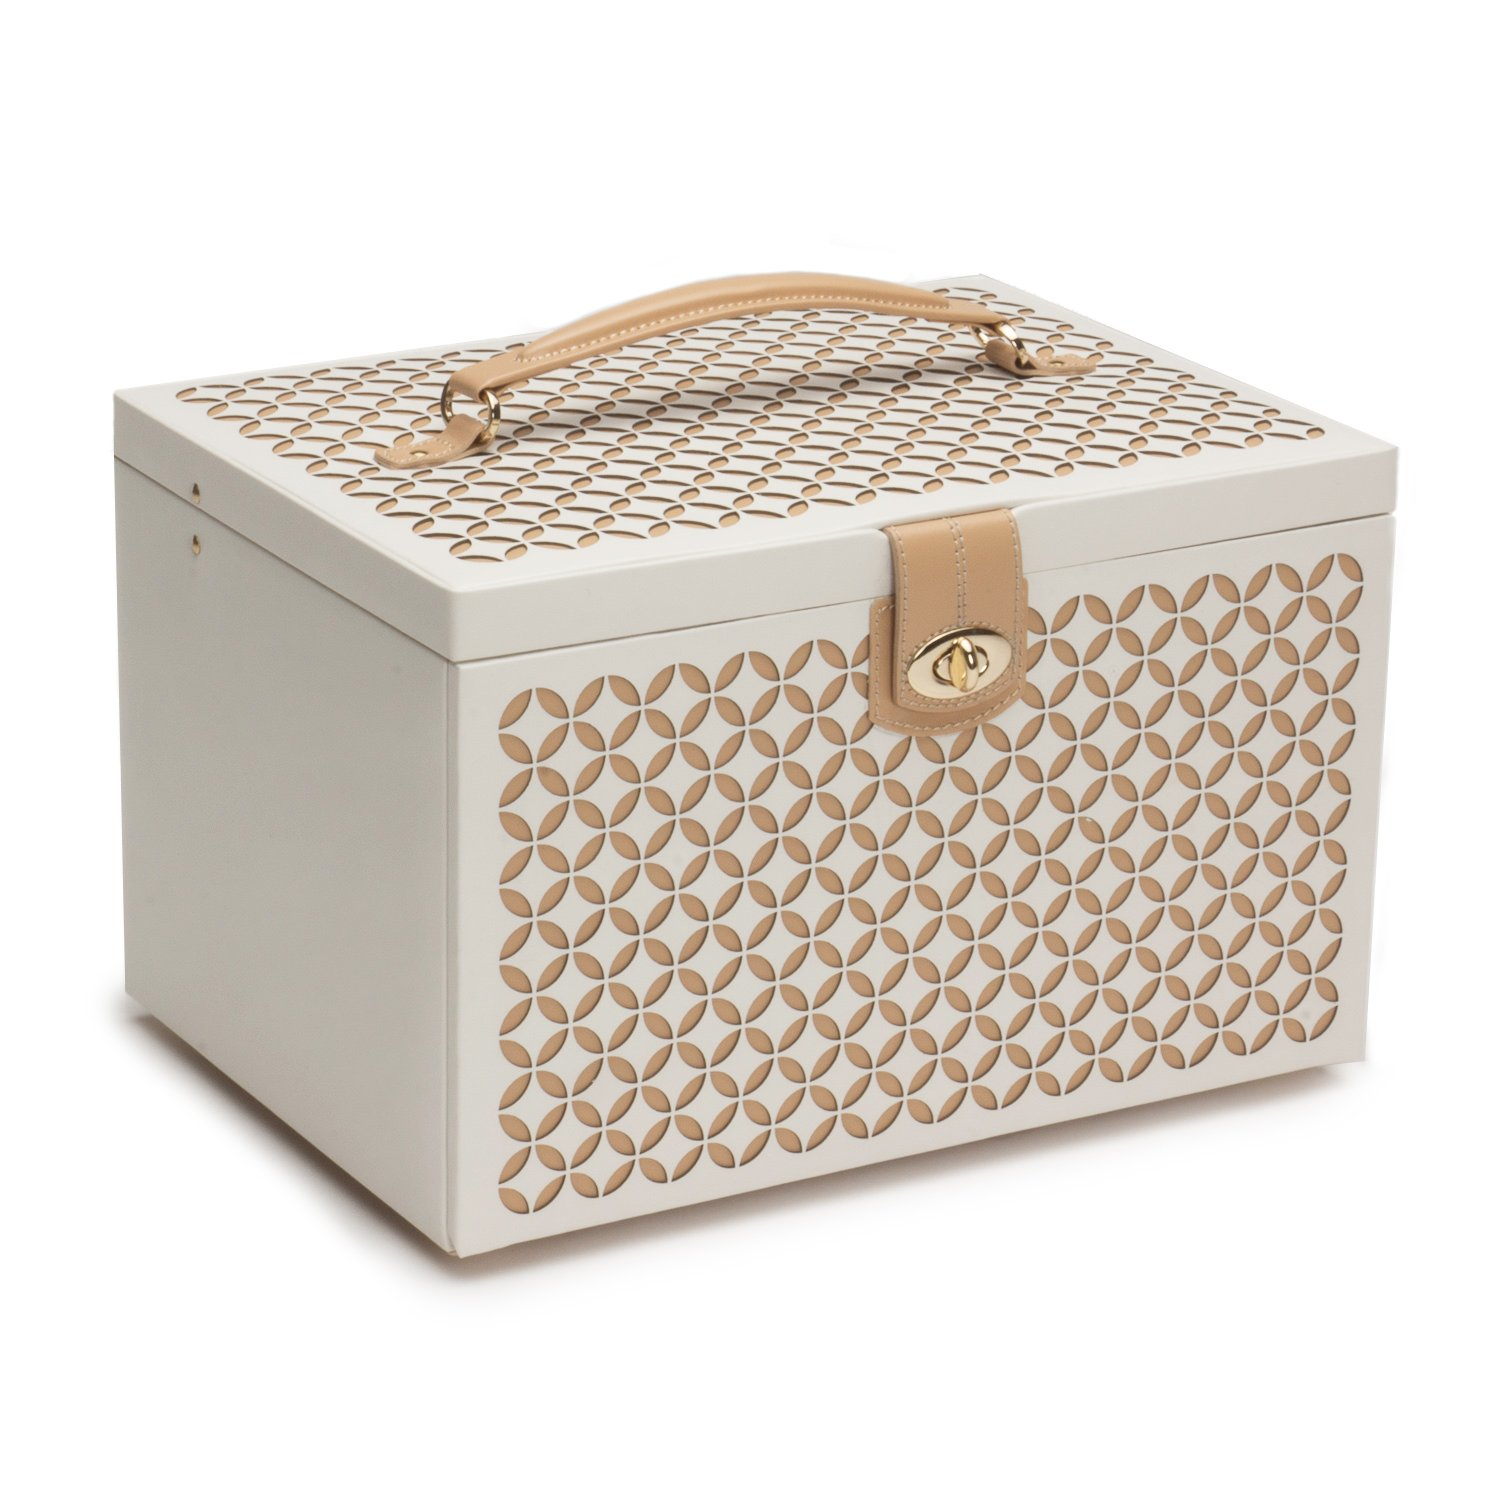 WOLF 301553 Chloe Large Jewelry Box, Cream by WOLF